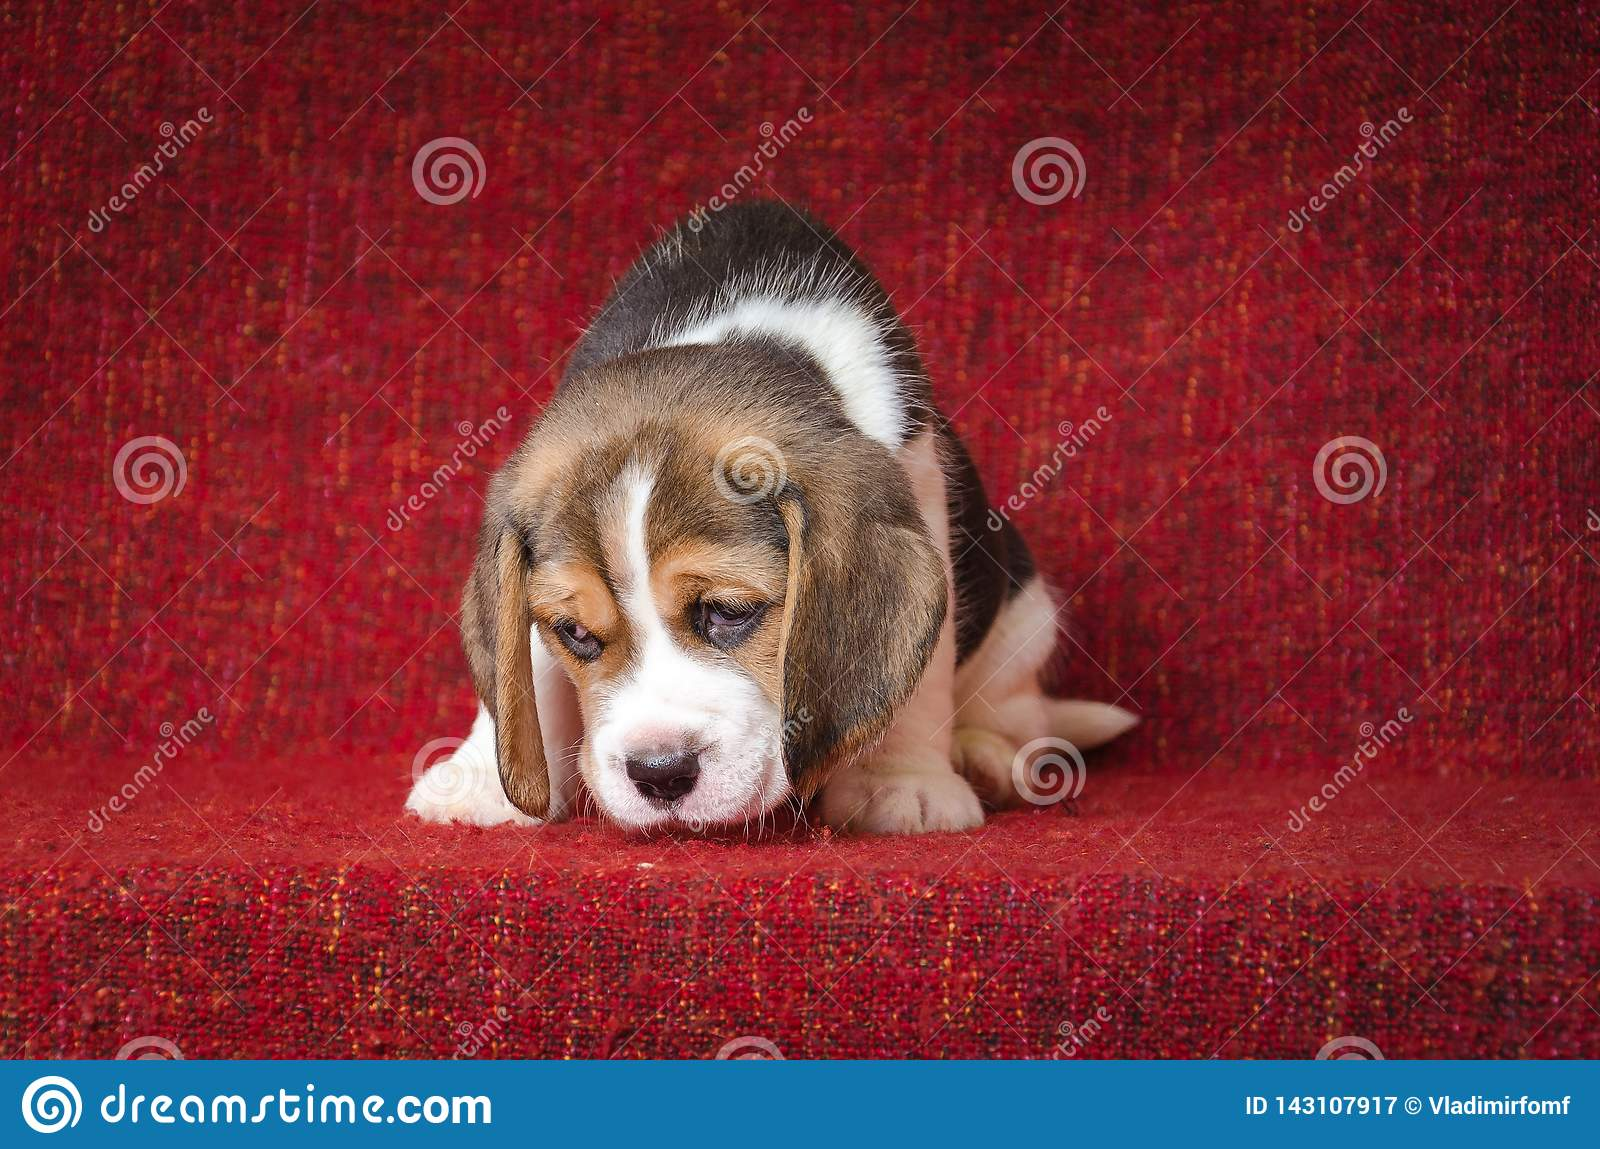 Cute And Sad Beagle Puppy On Red Background Stock Image Image Of Eyes Close 143107917